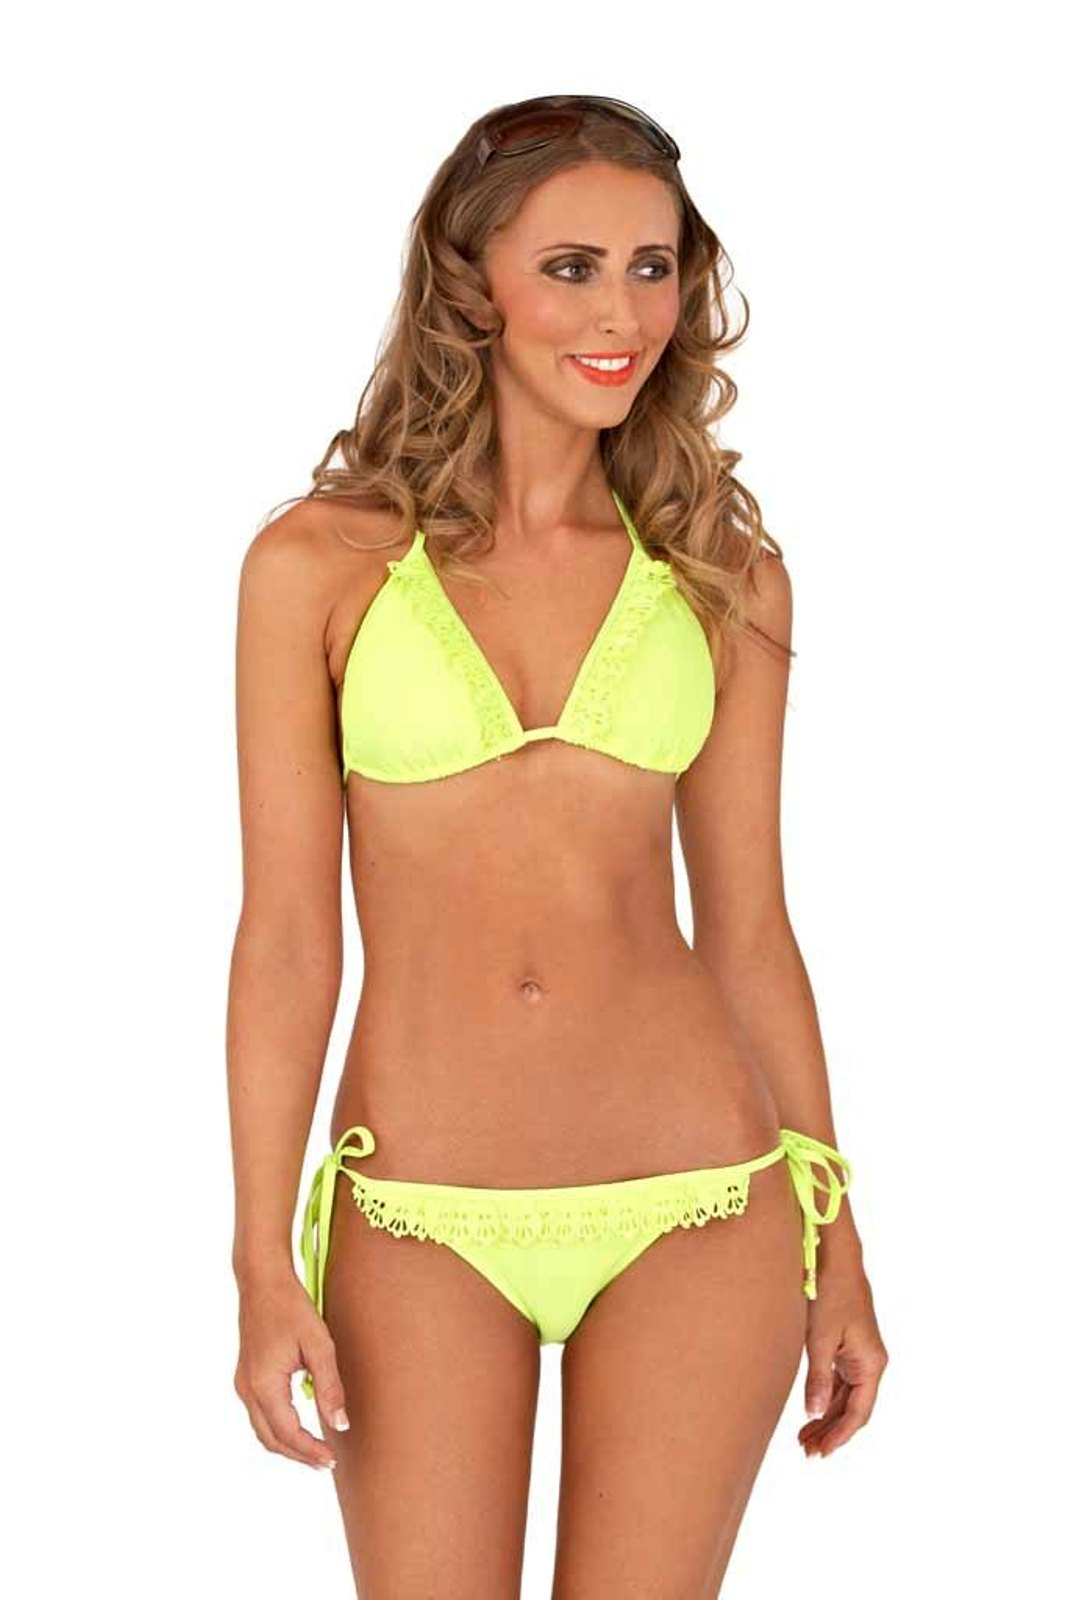 72bc3f95ff72a Womens String Neon Bikini Top + Bottoms Lace Triangle Swimwear Ladies Size  8-14